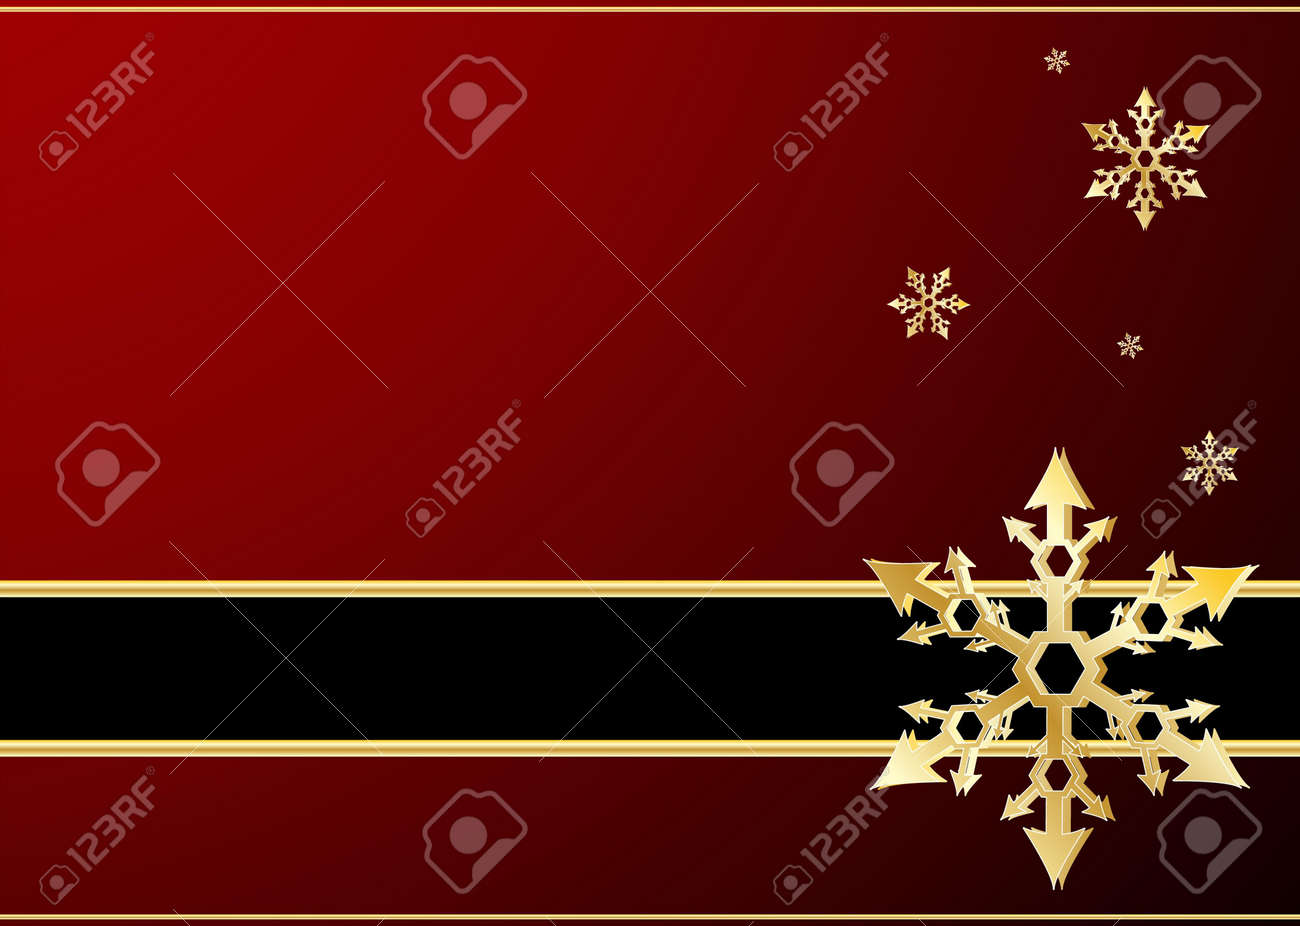 Editable vector winter background with space for your text Stock Vector - 7533694